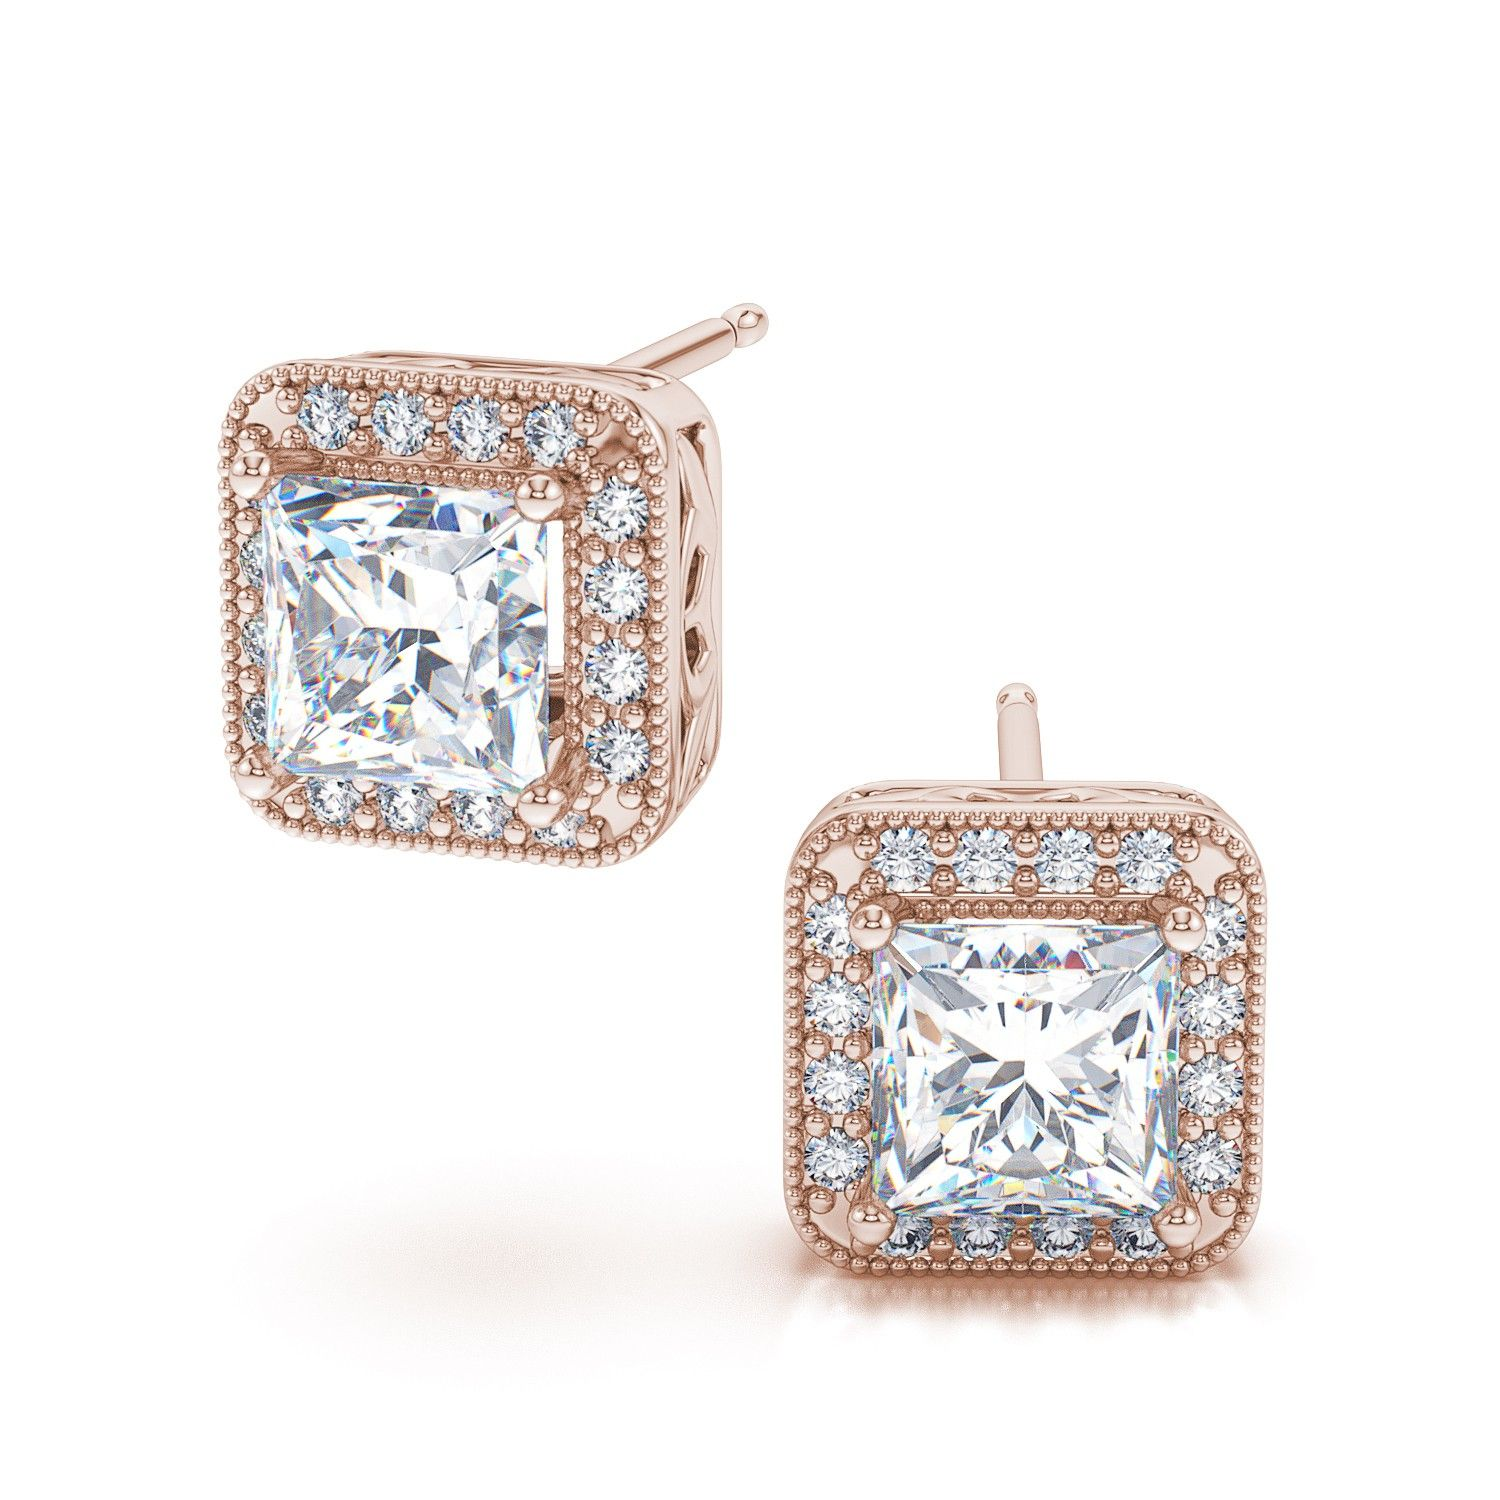 1CT Princess Pink Baguette Round Diamond Earrings Square Stud 14K Yellow Gold